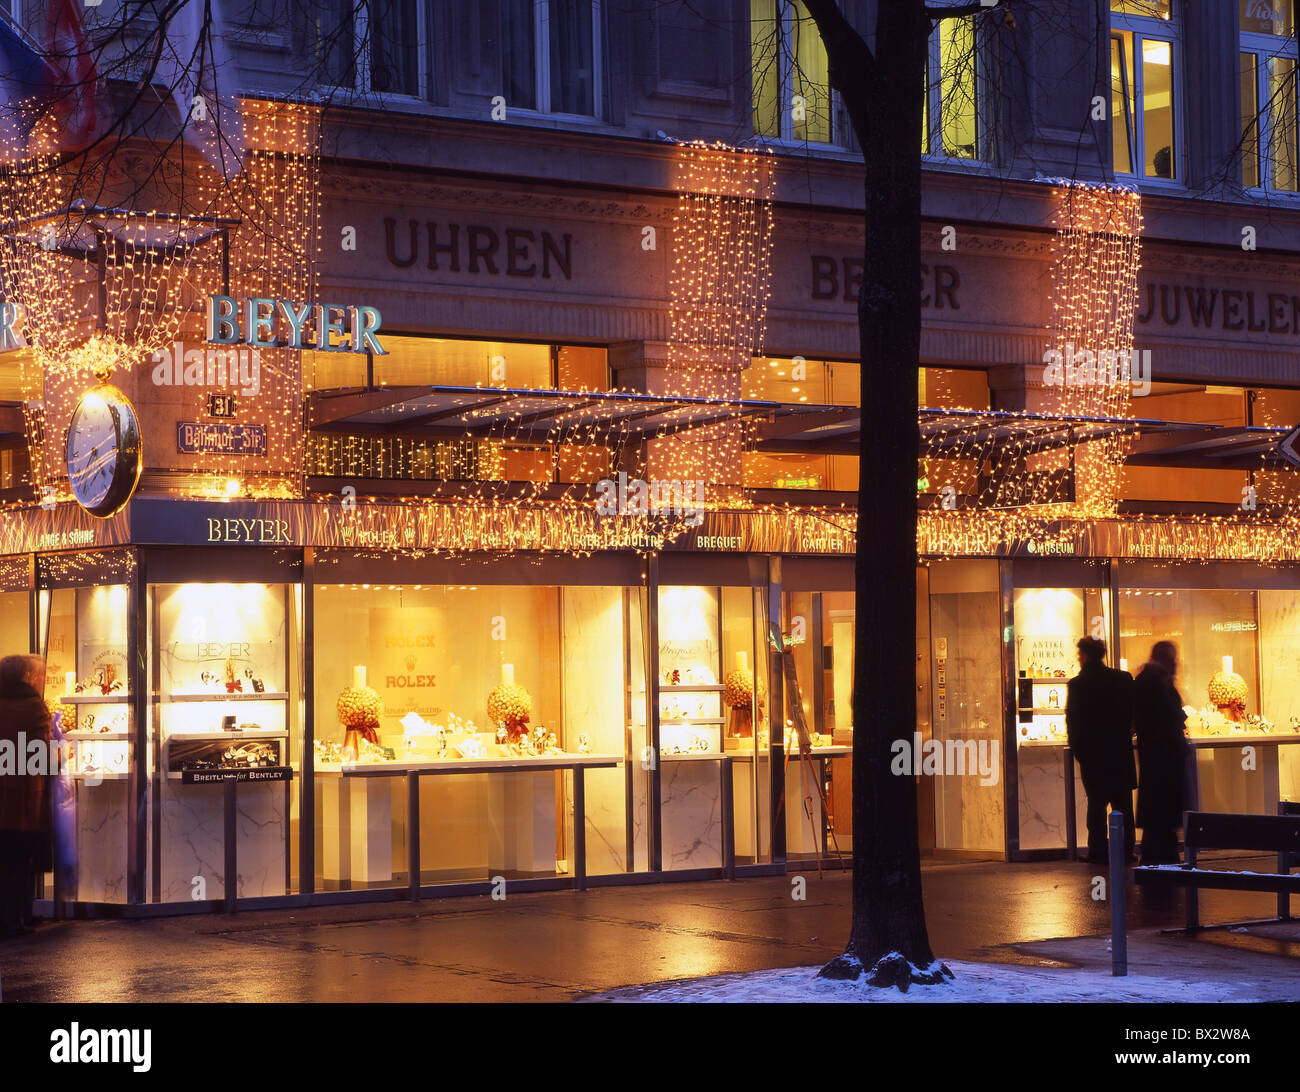 zurich town city christmas bahnhofstrasse stockfotos. Black Bedroom Furniture Sets. Home Design Ideas